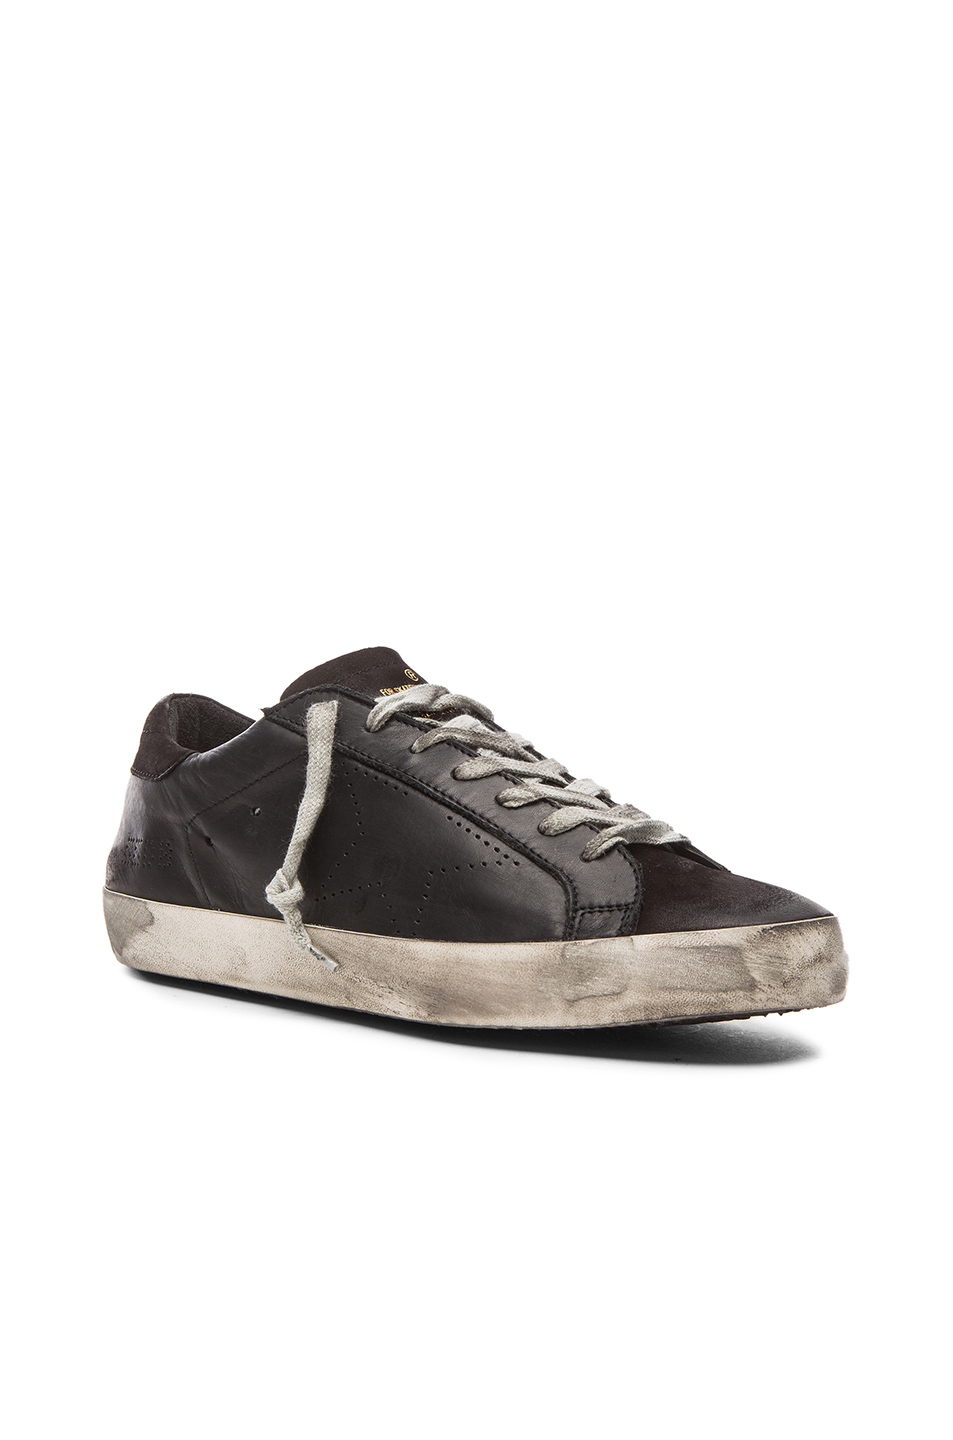 Golden Goose Superstar Leather Sneakers in Black